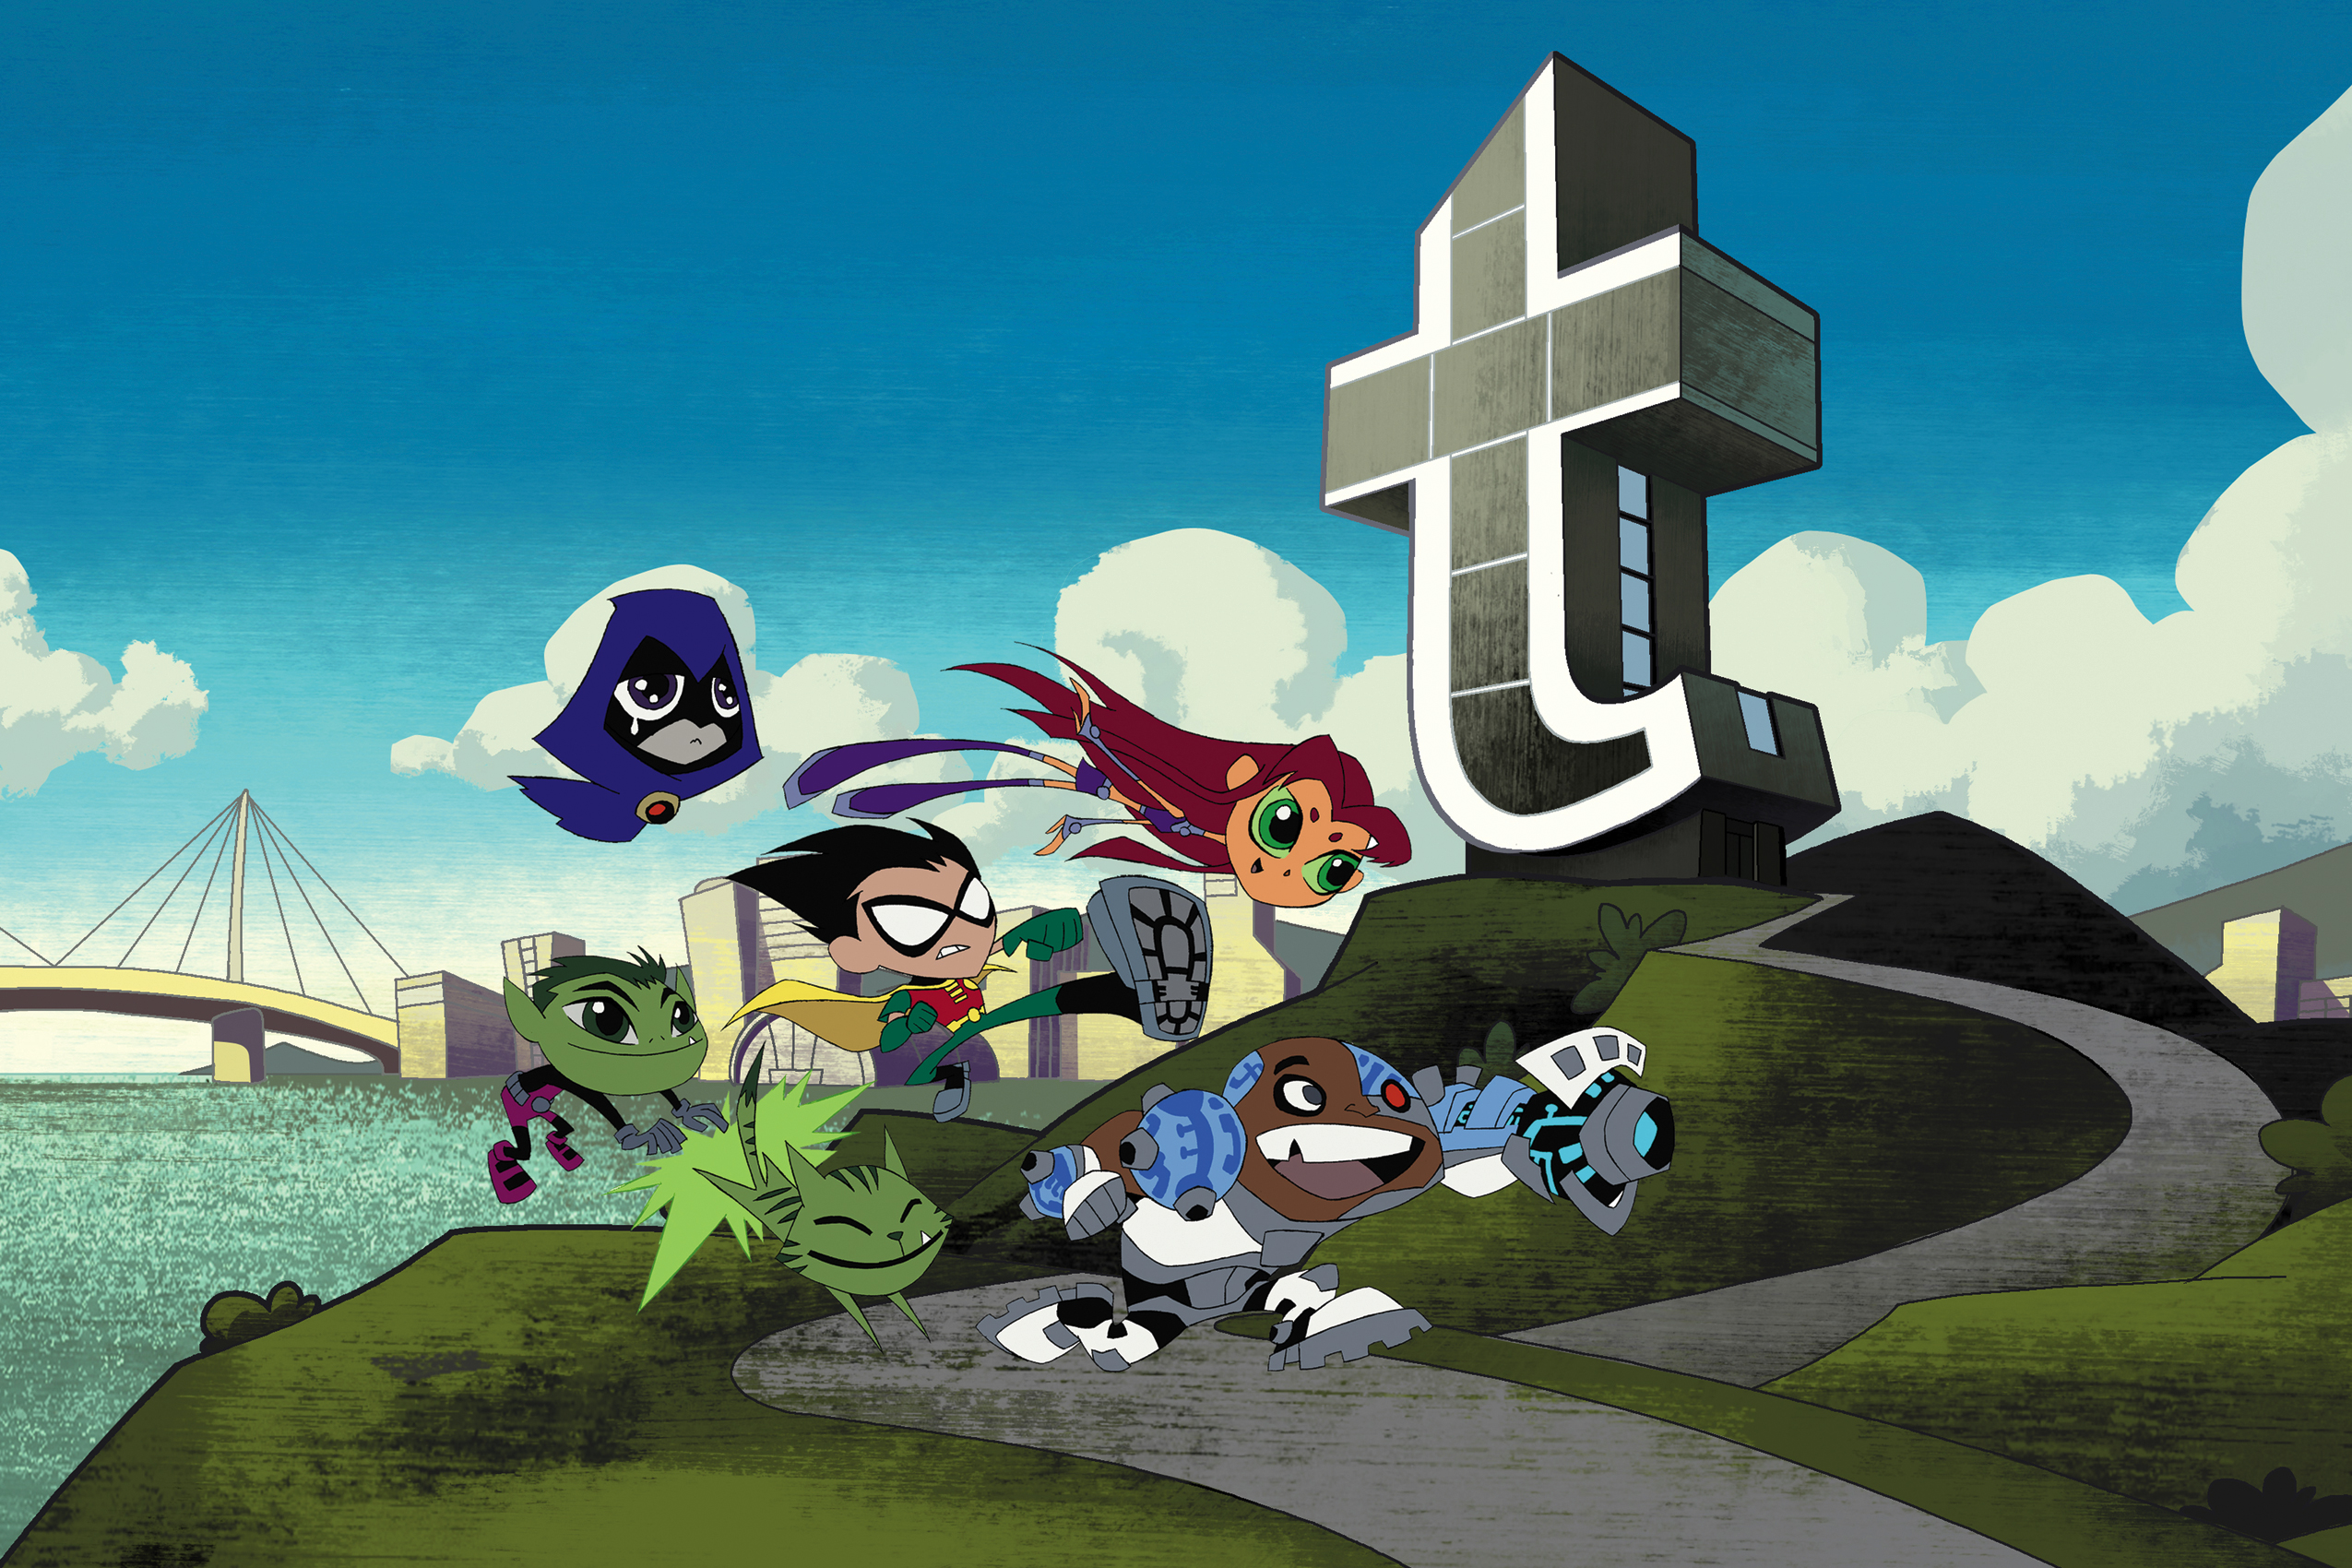 Real Hd Wallpapers 1080p Hd Raven Teen Titans Backgrounds Pixelstalk Net